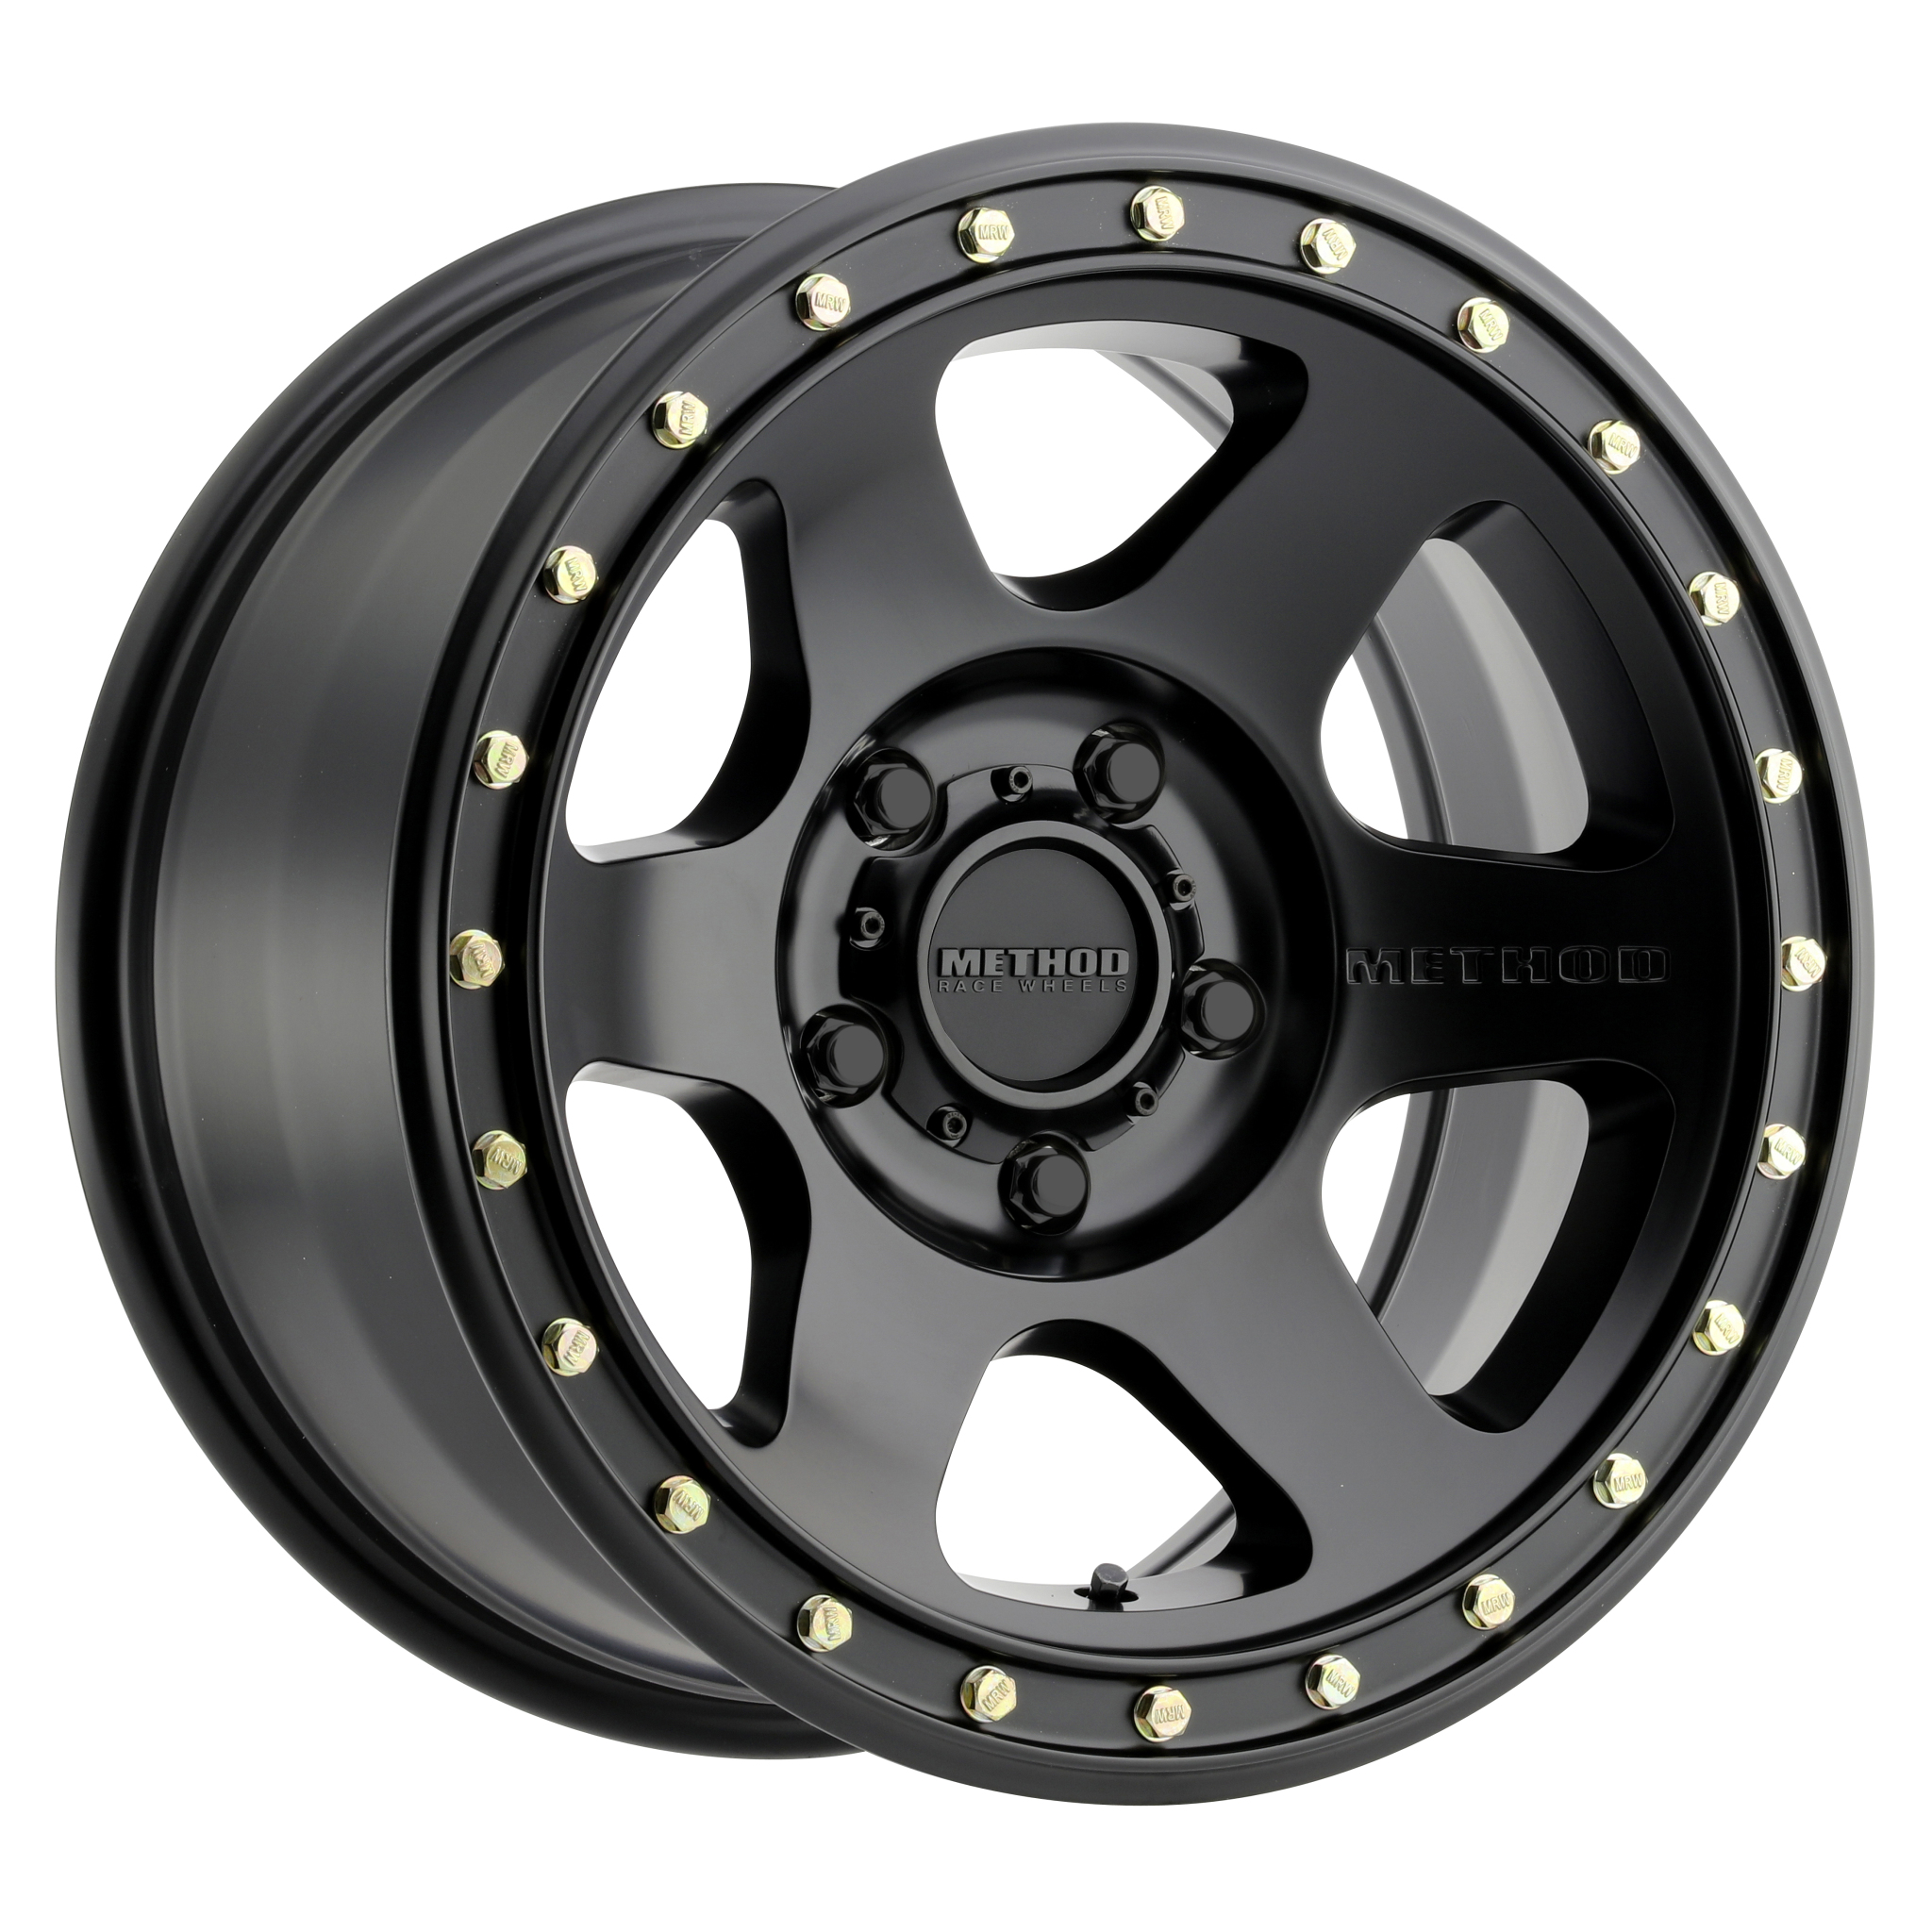 Method 310 Con6, 18x9, +18mm Offset, 5x150, 110.5mm Centerbore, Matte Black